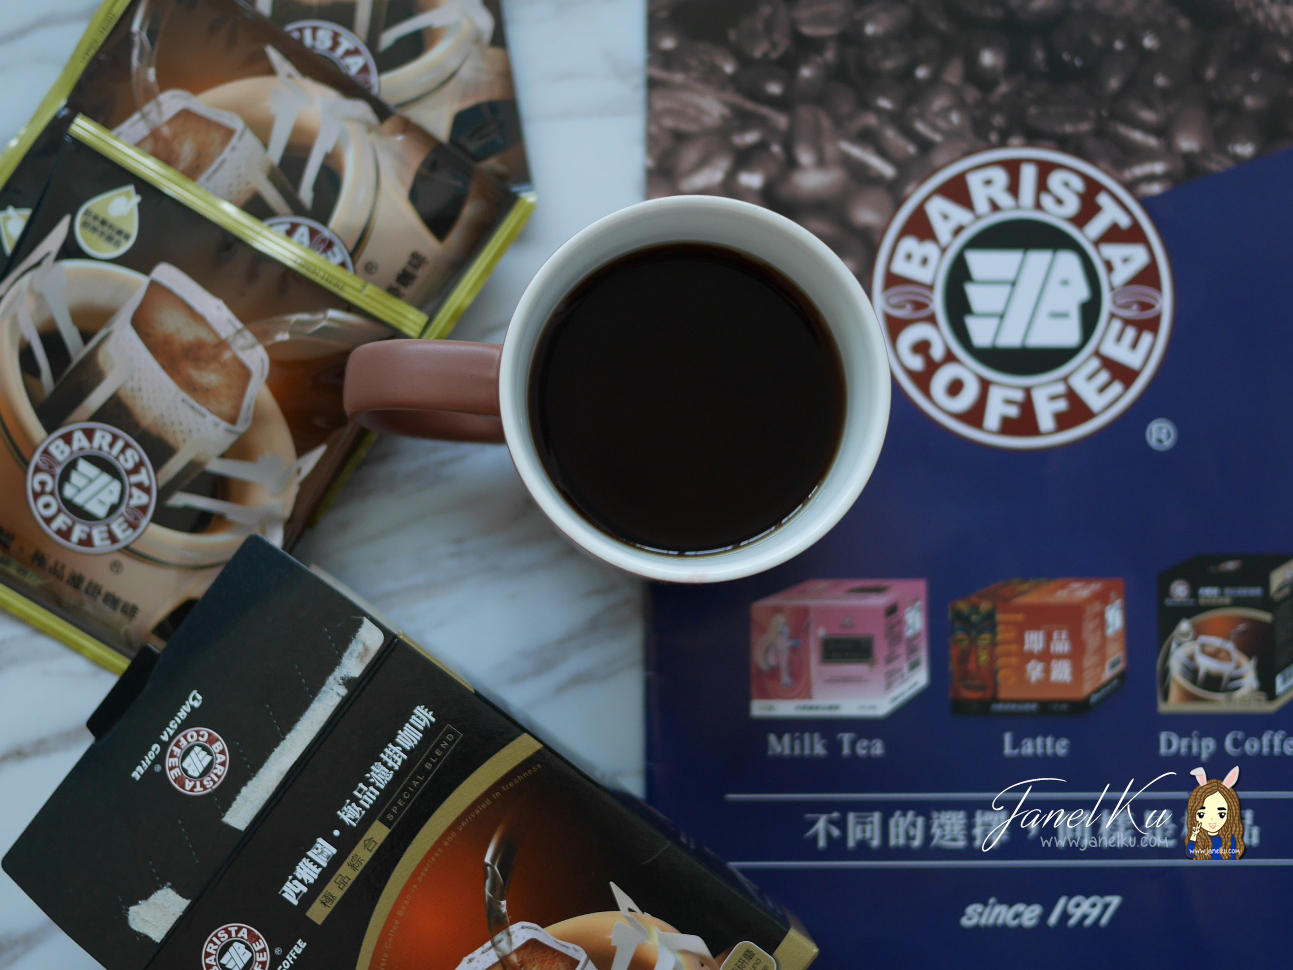 Get a taste of Taiwan Coffee: Barista Gourmet Drip Coffee by Barista Coffee